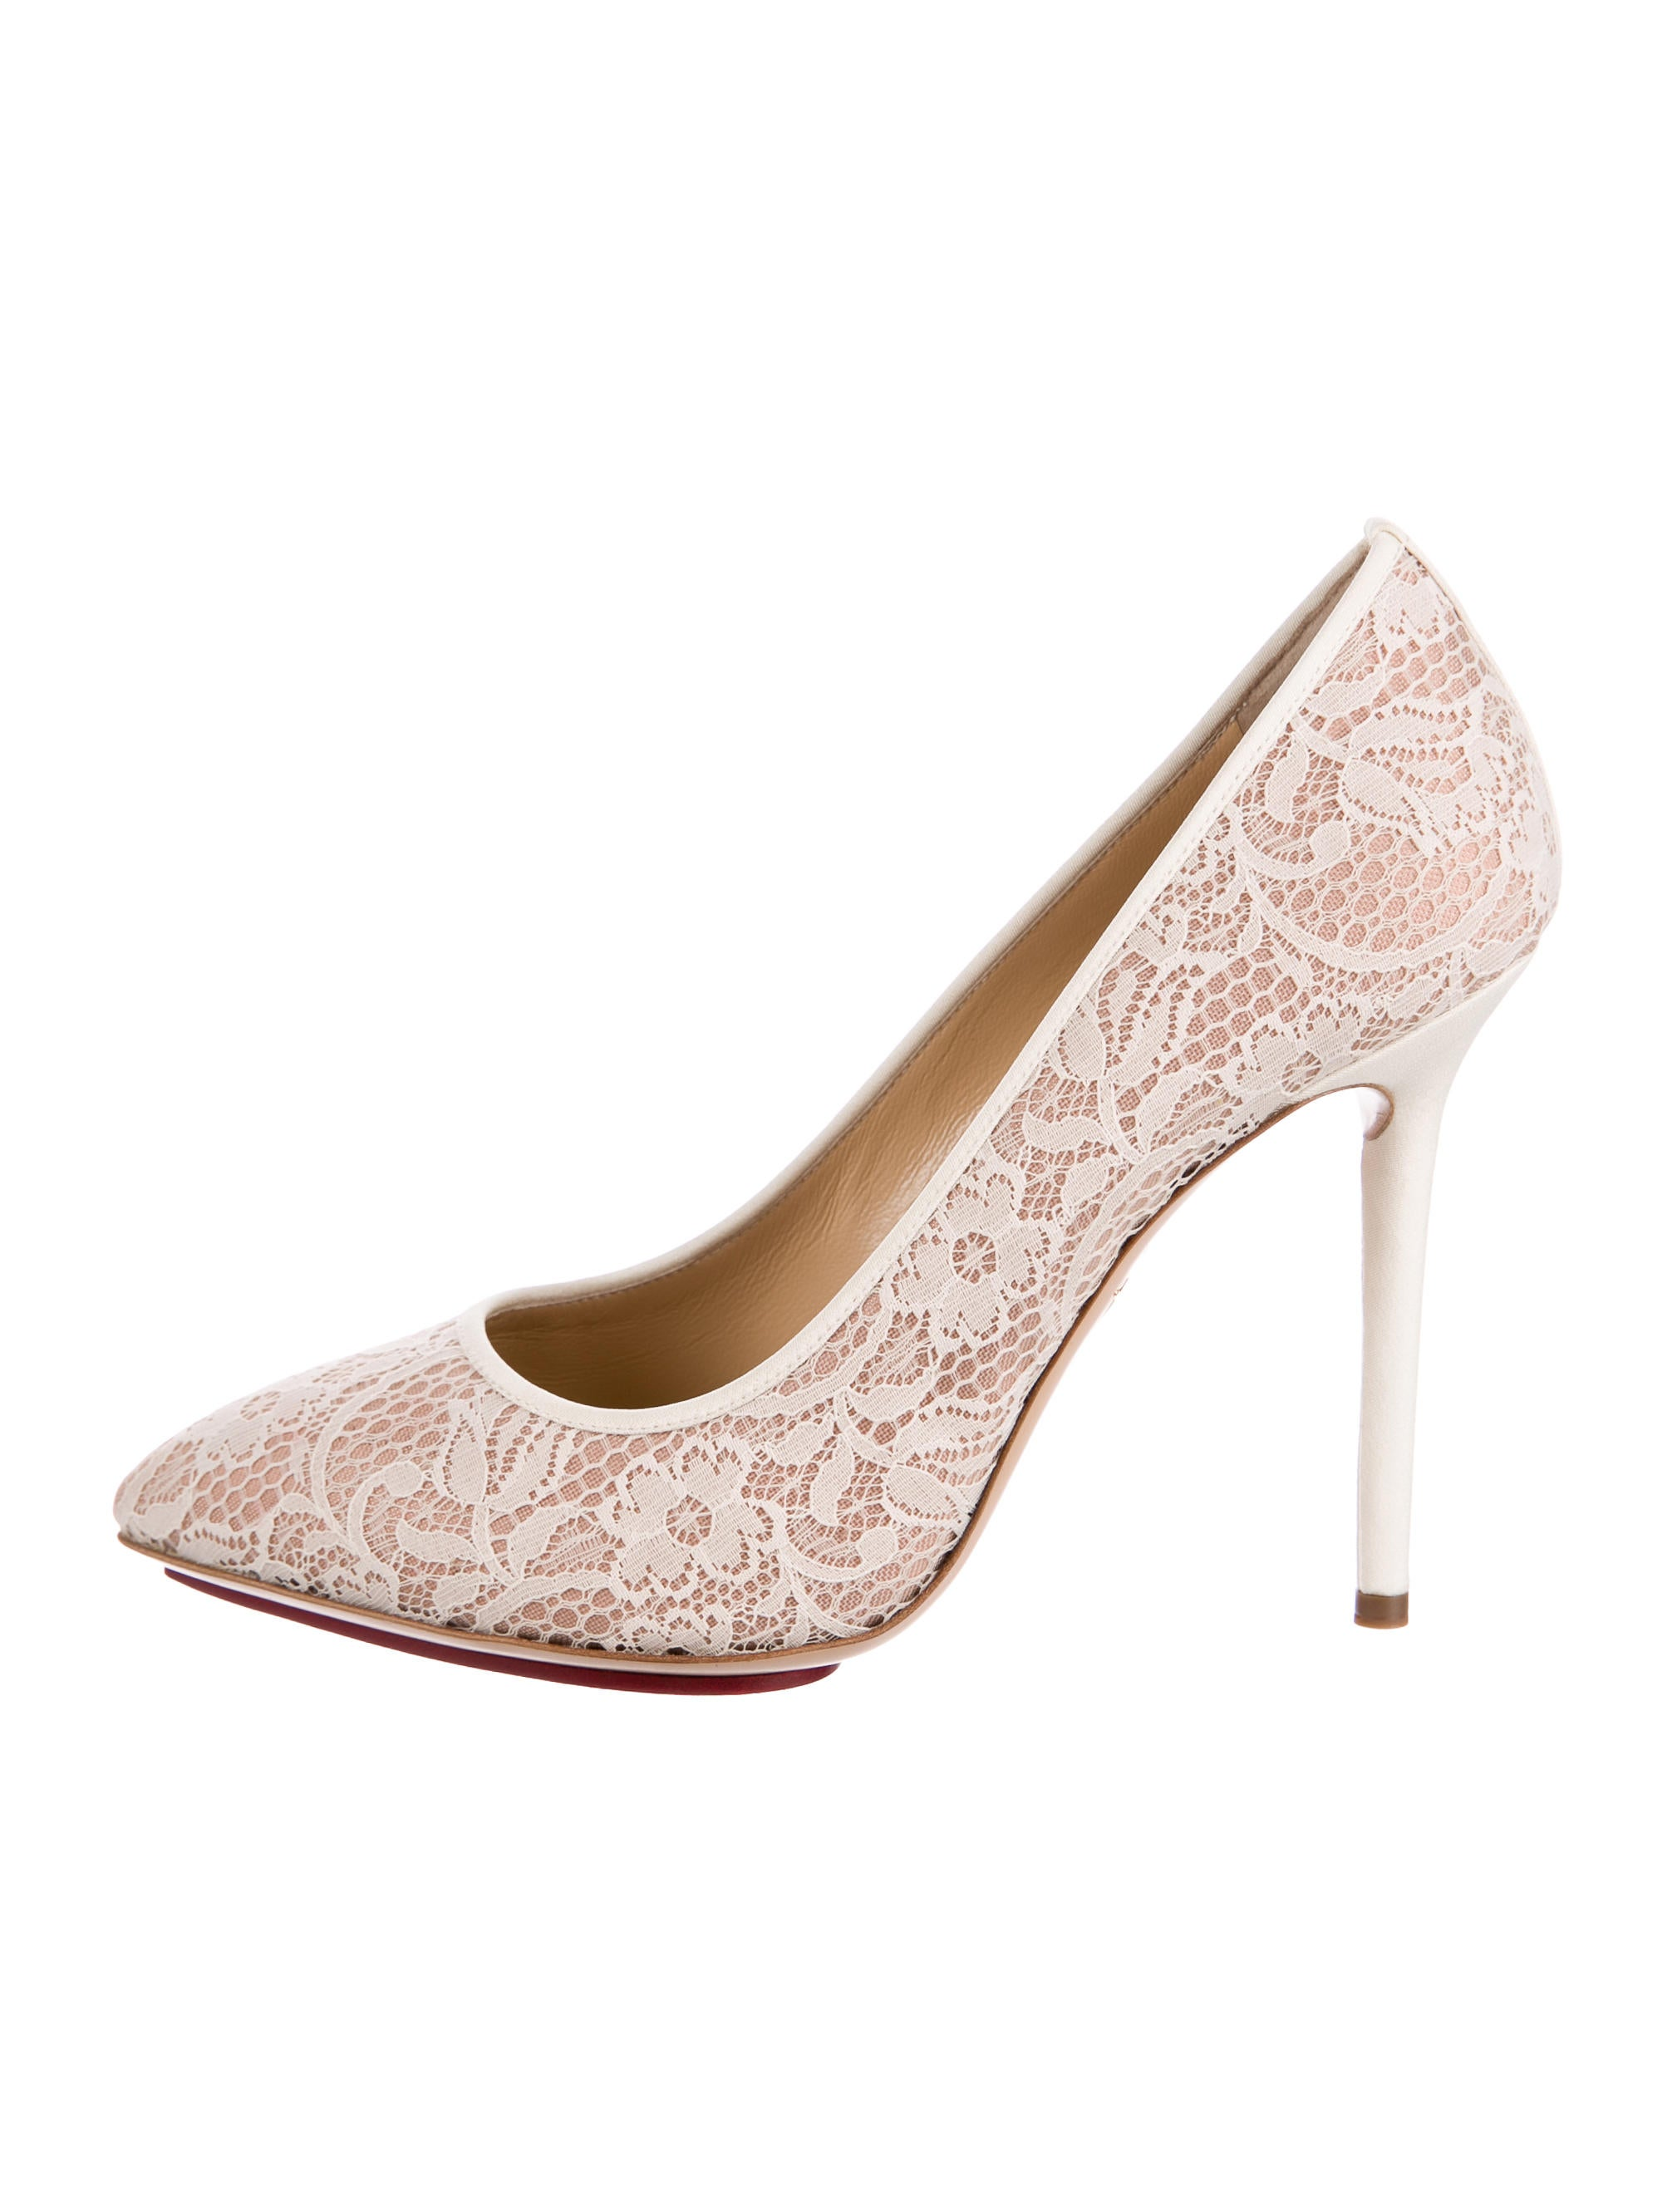 buy cheap popular outlet Cheapest Charlotte Olympia Monroe Lace Pumps w/ Tags discount fashionable clearance store for sale tQaB2lH